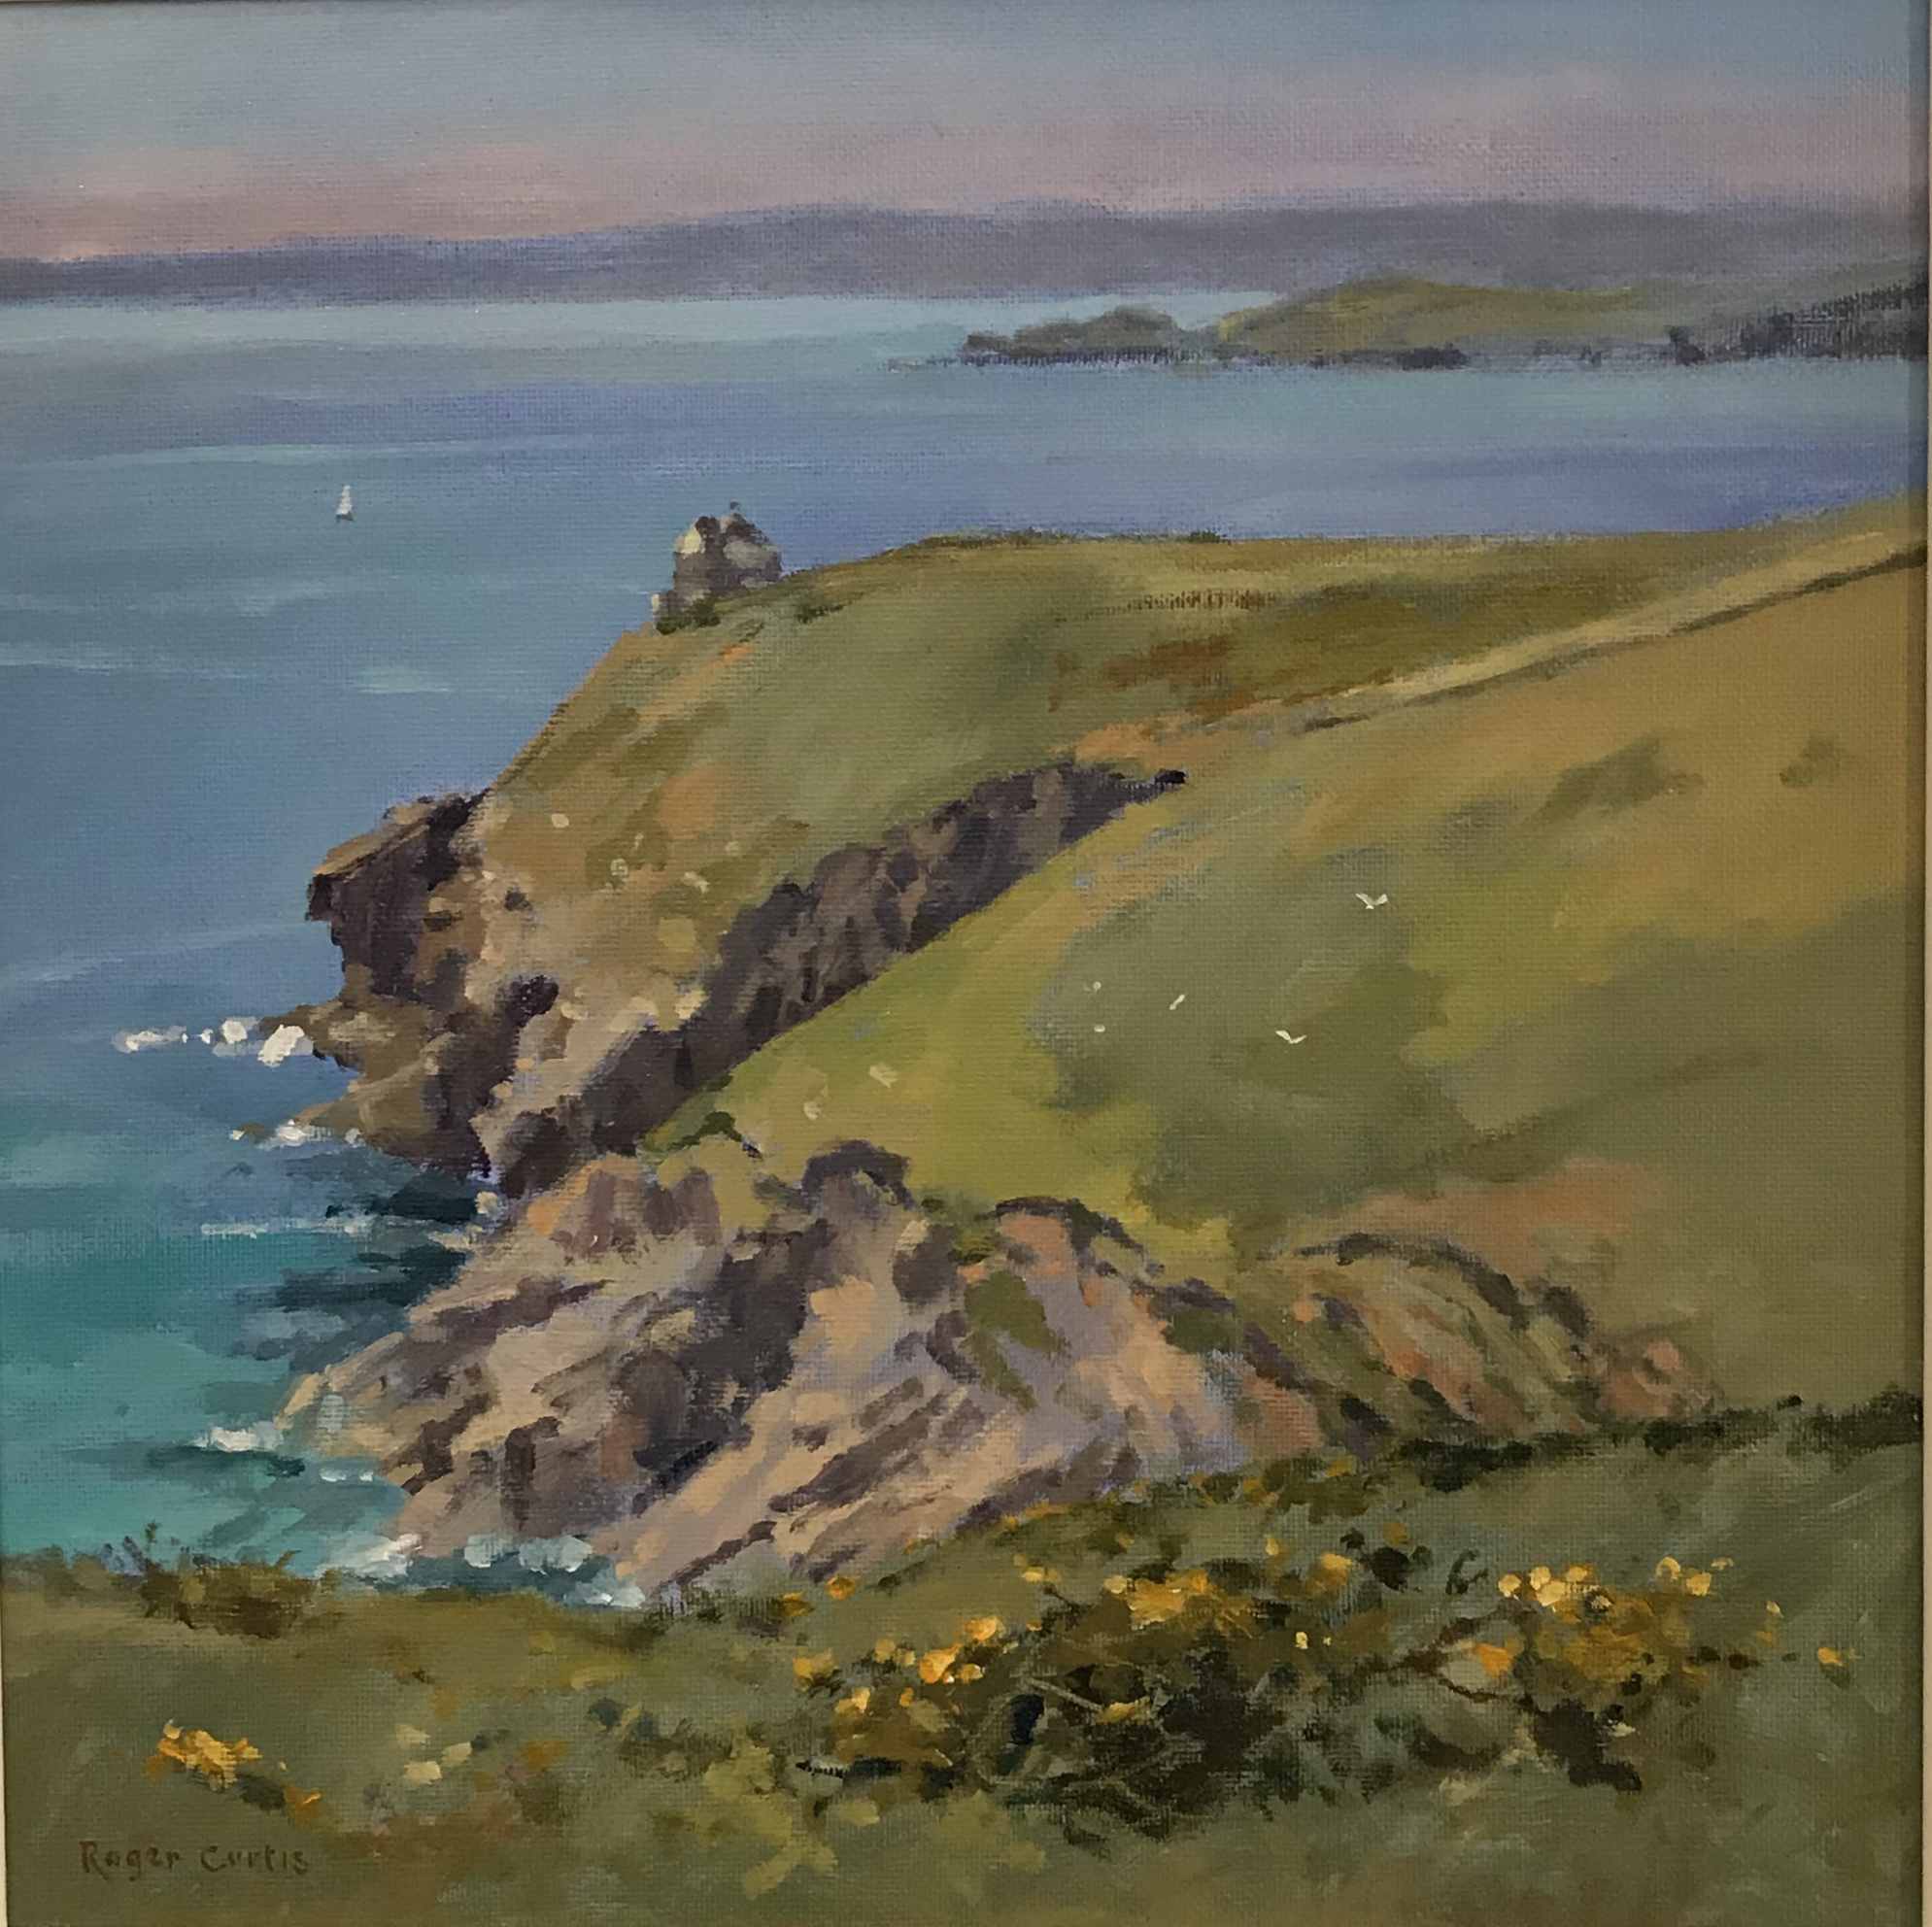 Roger Curtis Sea Cliffs Rinsey Customs House Gallery